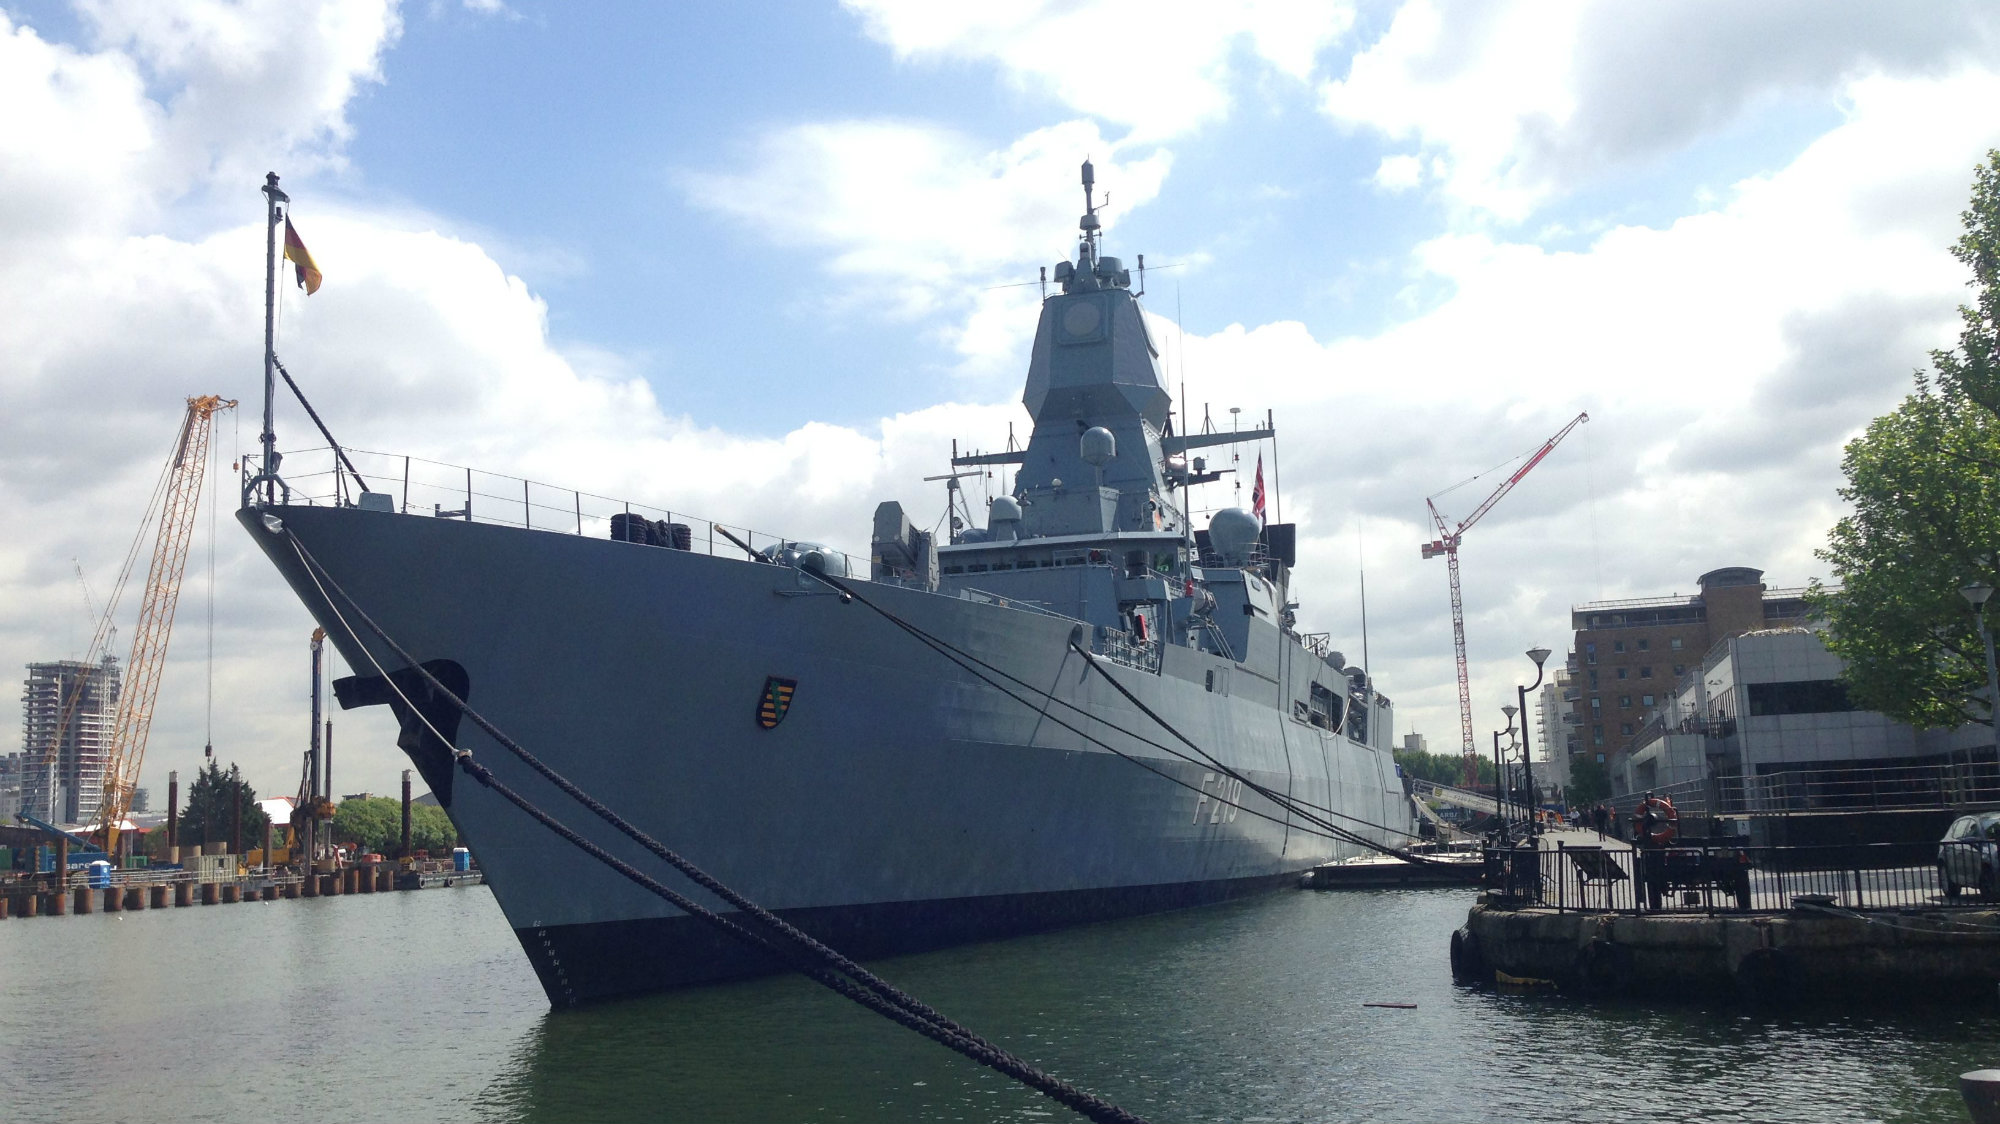 The Sachsen class frigate F129, also called Sachsen, berthed in London's Canary Wharf district.